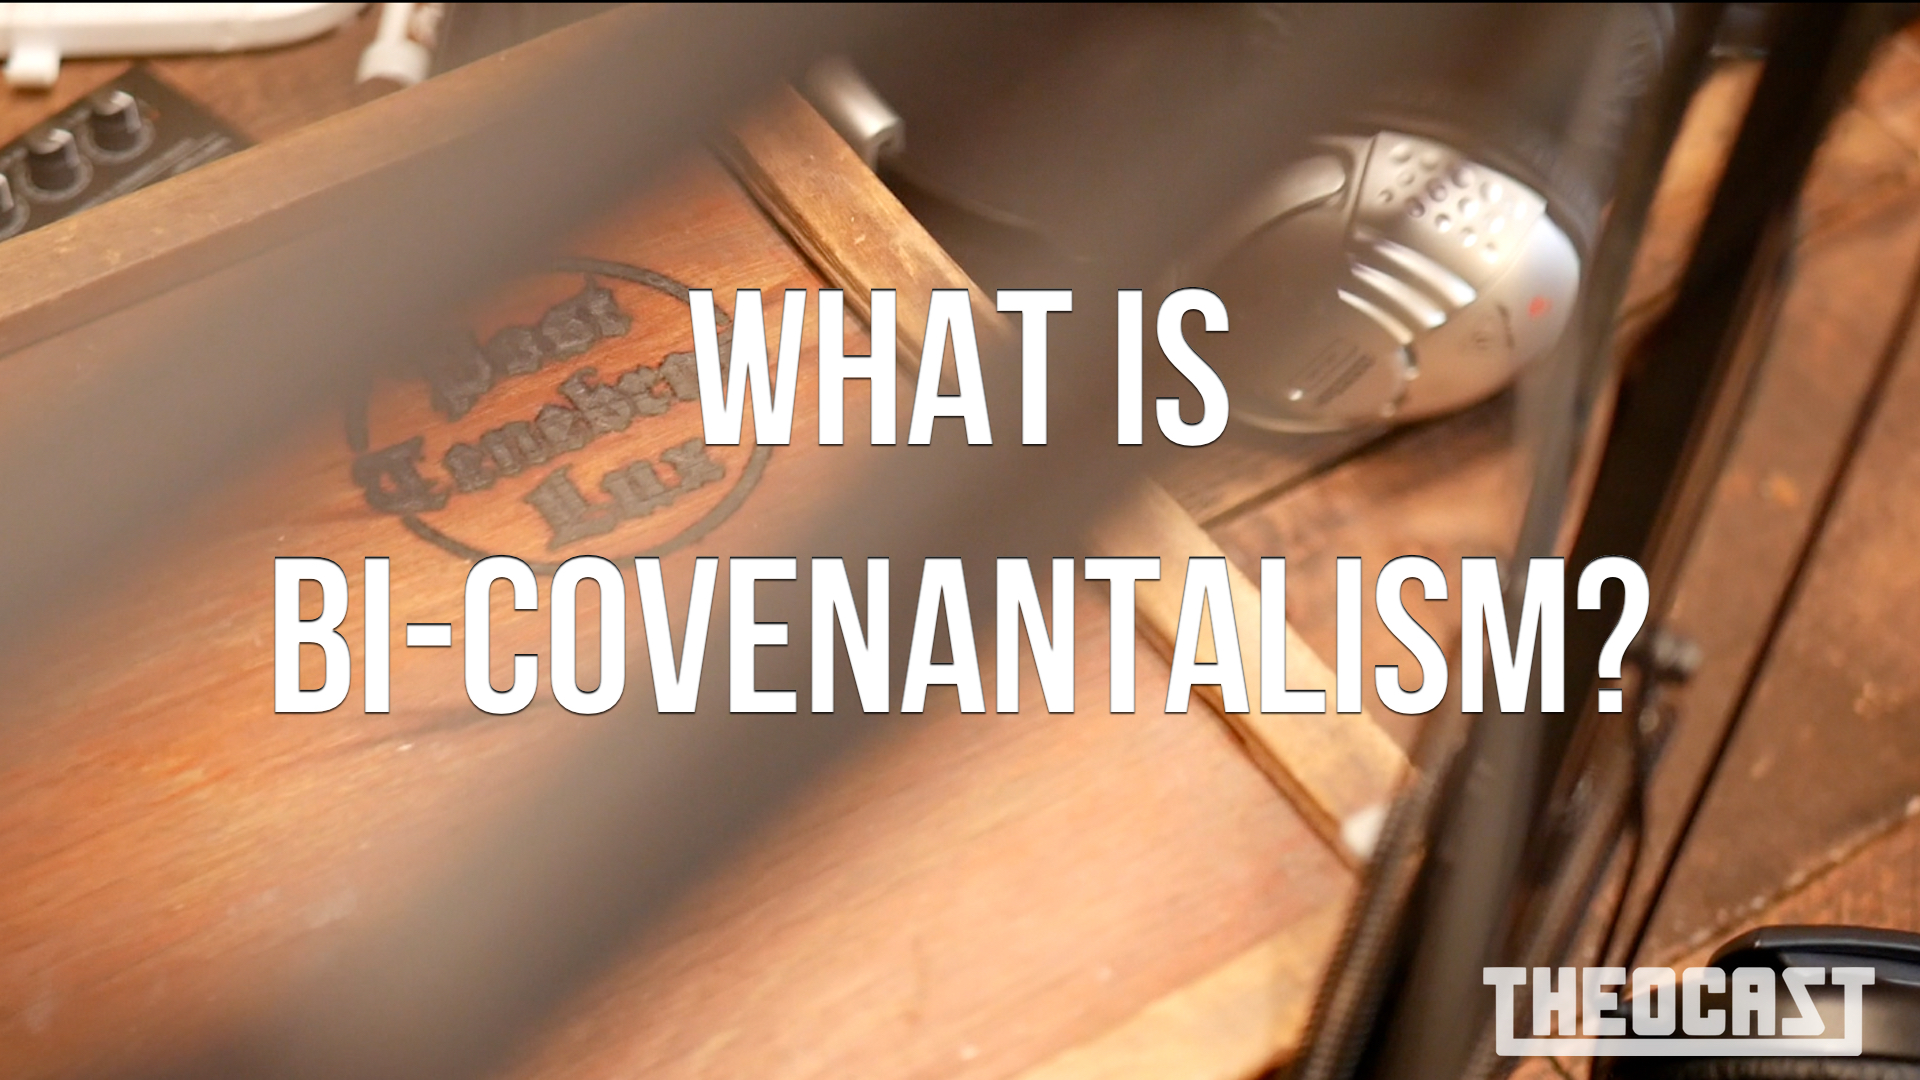 What is bi-covenantalism?